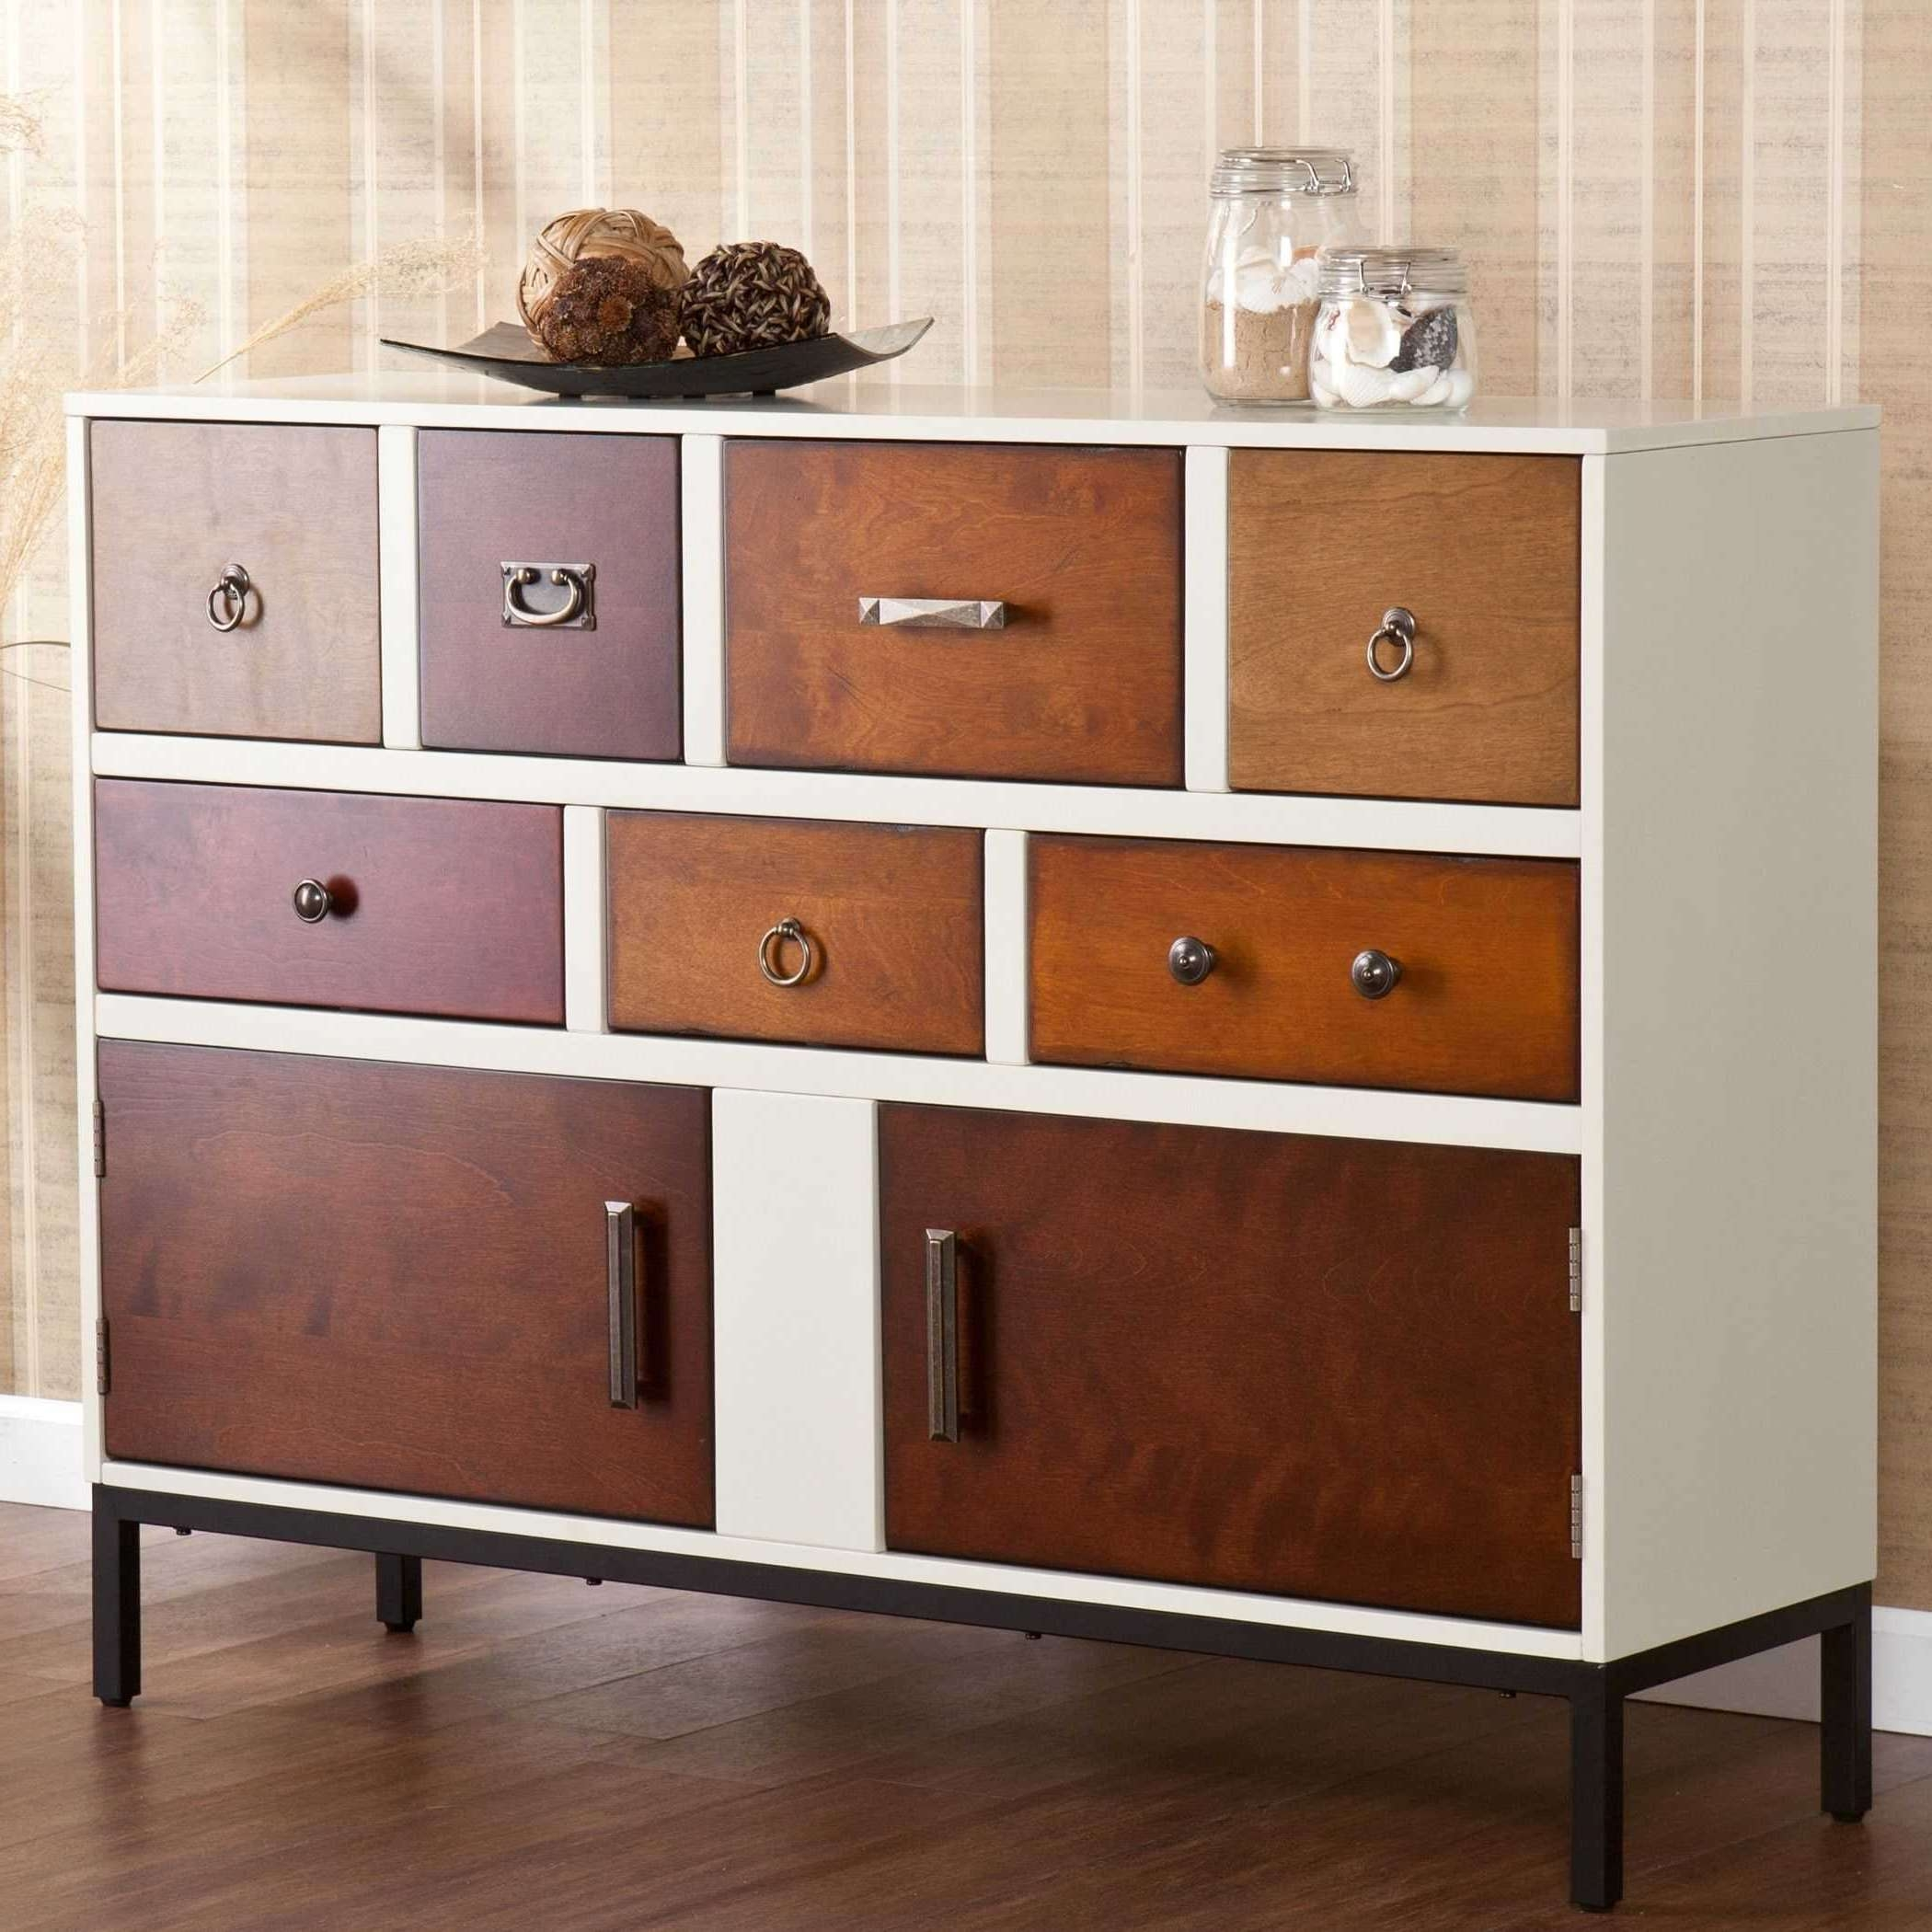 Best Dining Room Consoles Buffets Images – Liltigertoo For Overstock Sideboards (View 3 of 20)